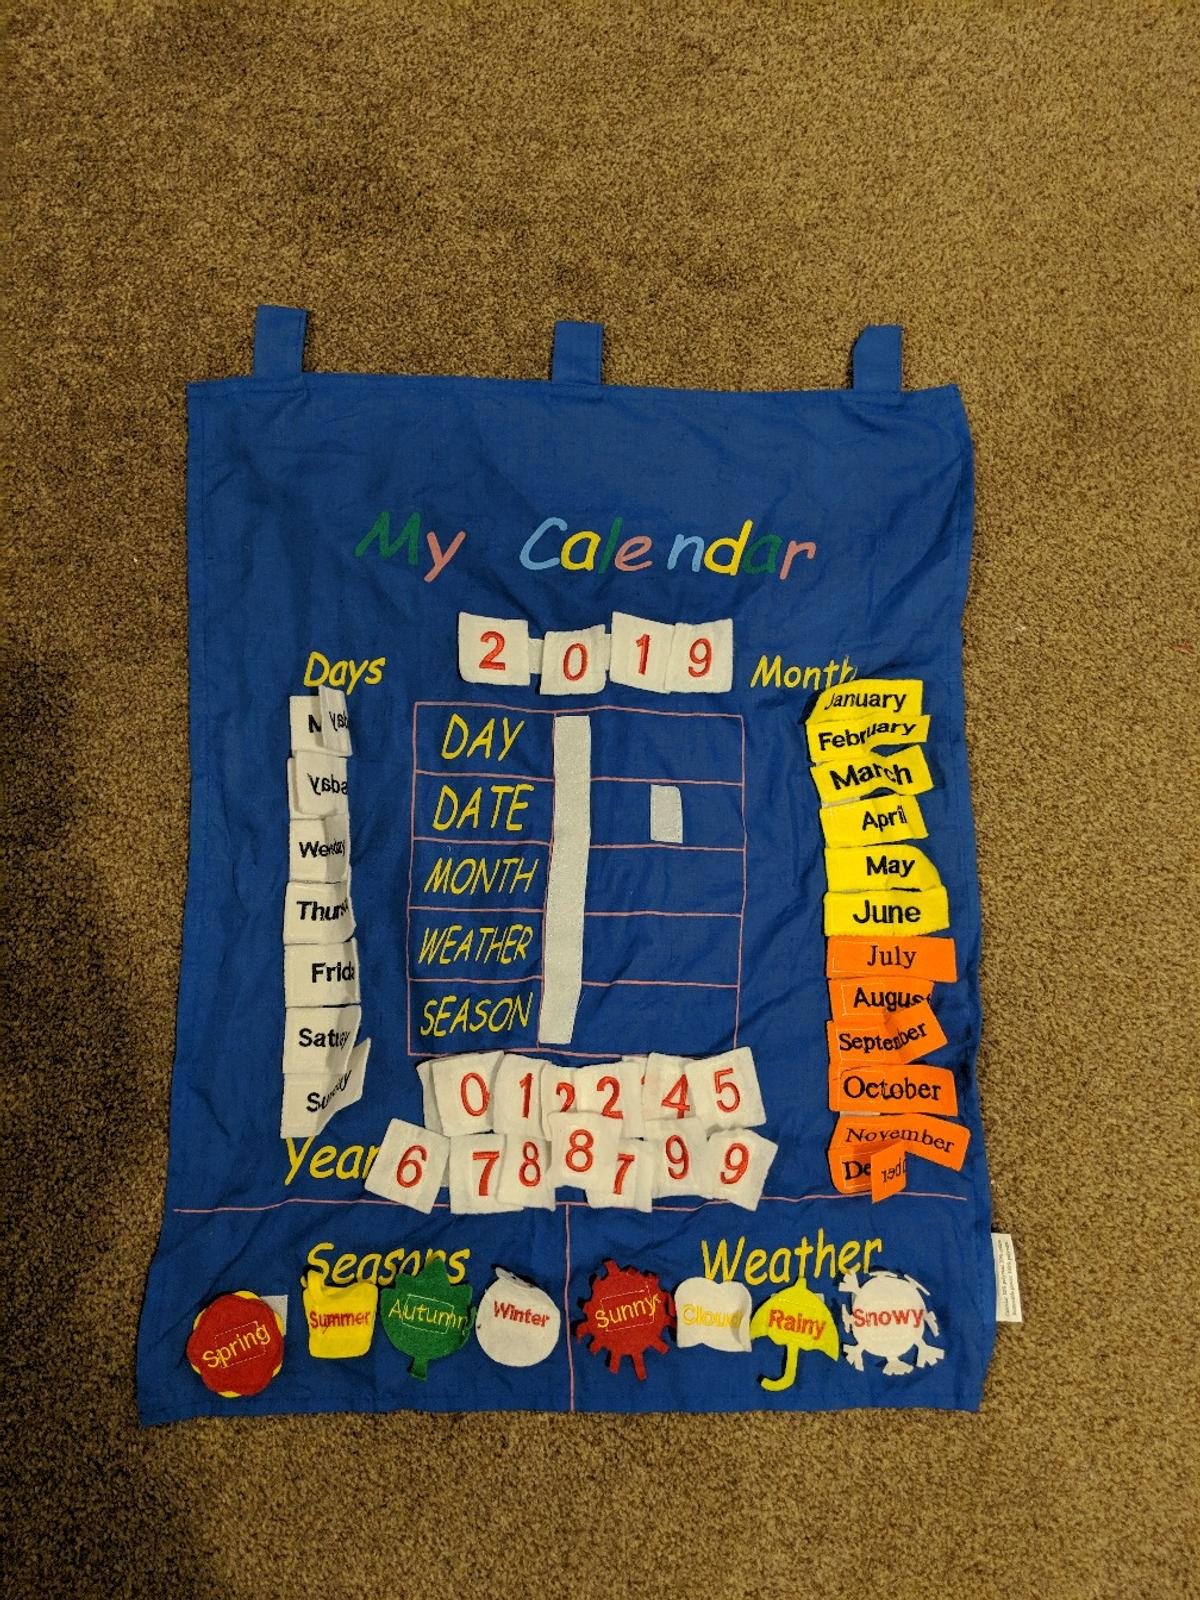 Velcro Calendar for displaying the day, date, month, weather and season. This has been used but is in good condition. Please note it is missing the wooden pole for hanging. Please see my other items. Collection from Bickley. Non smoking home.